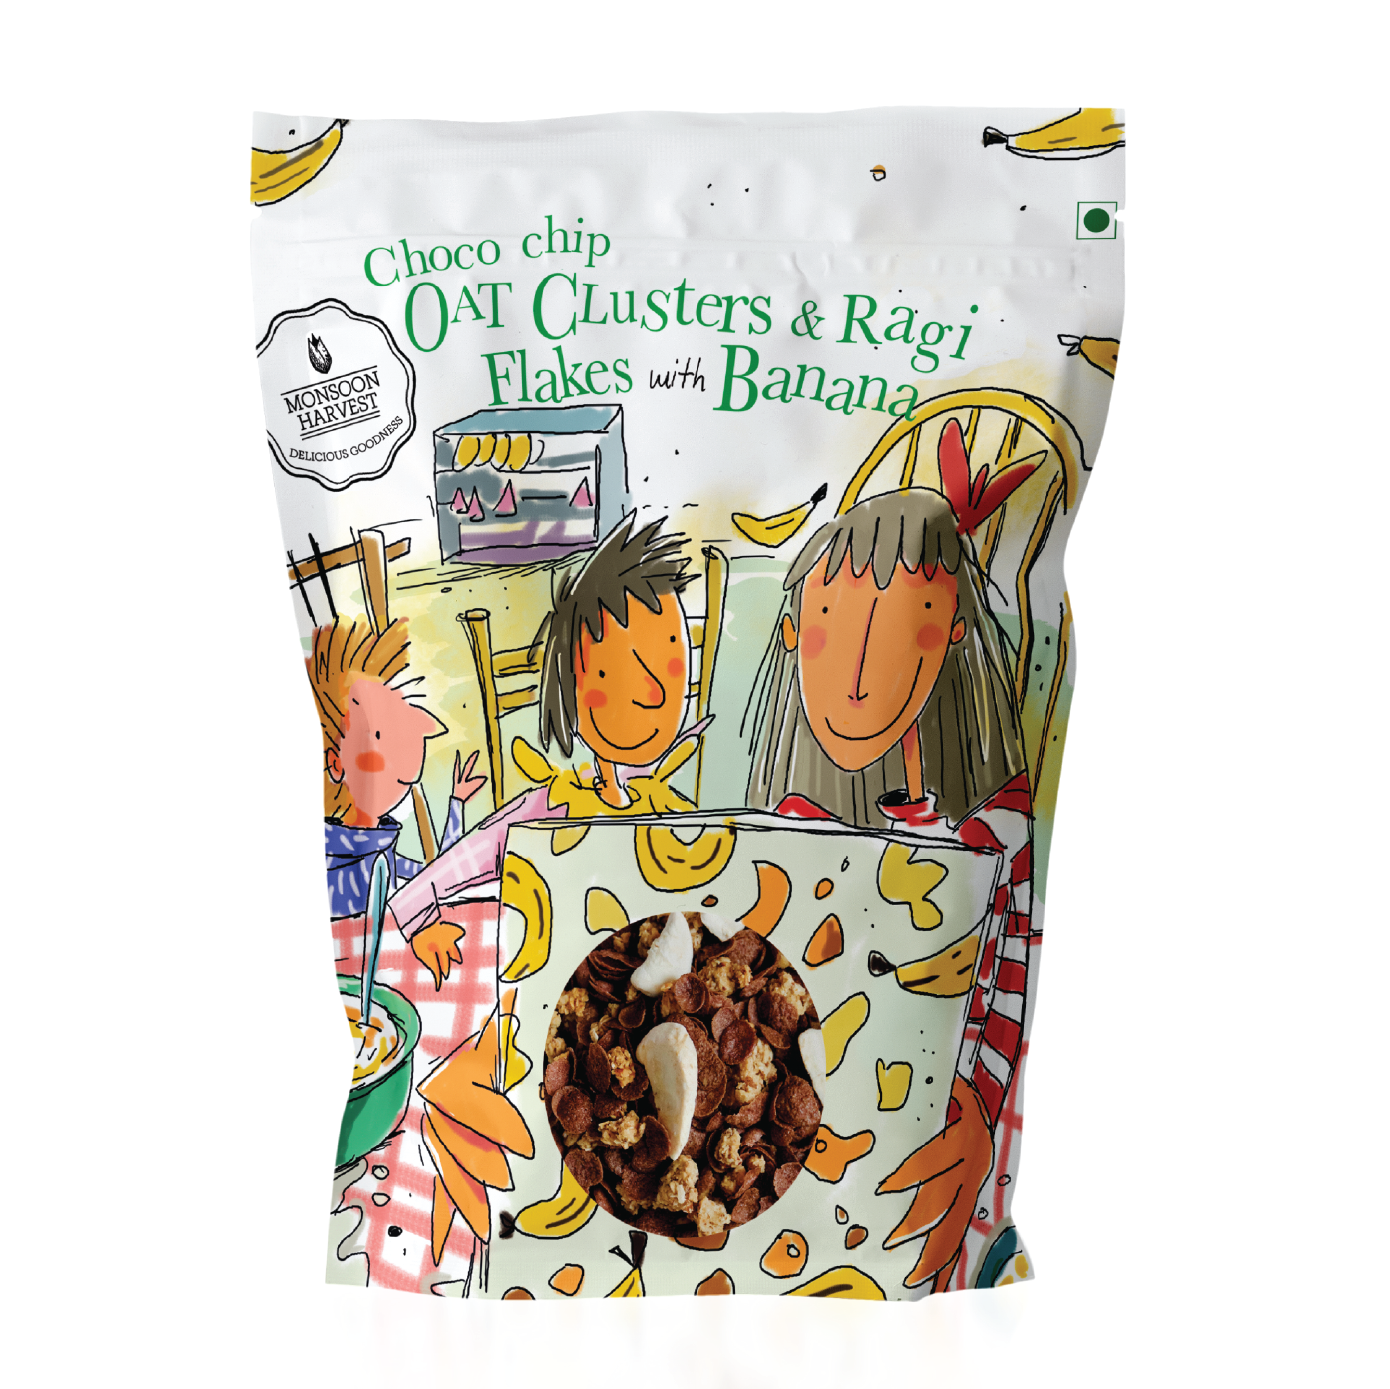 Breakfast Cereal - Choco chip Oat Clusters & Ragi Flakes with Banana - 1 KG